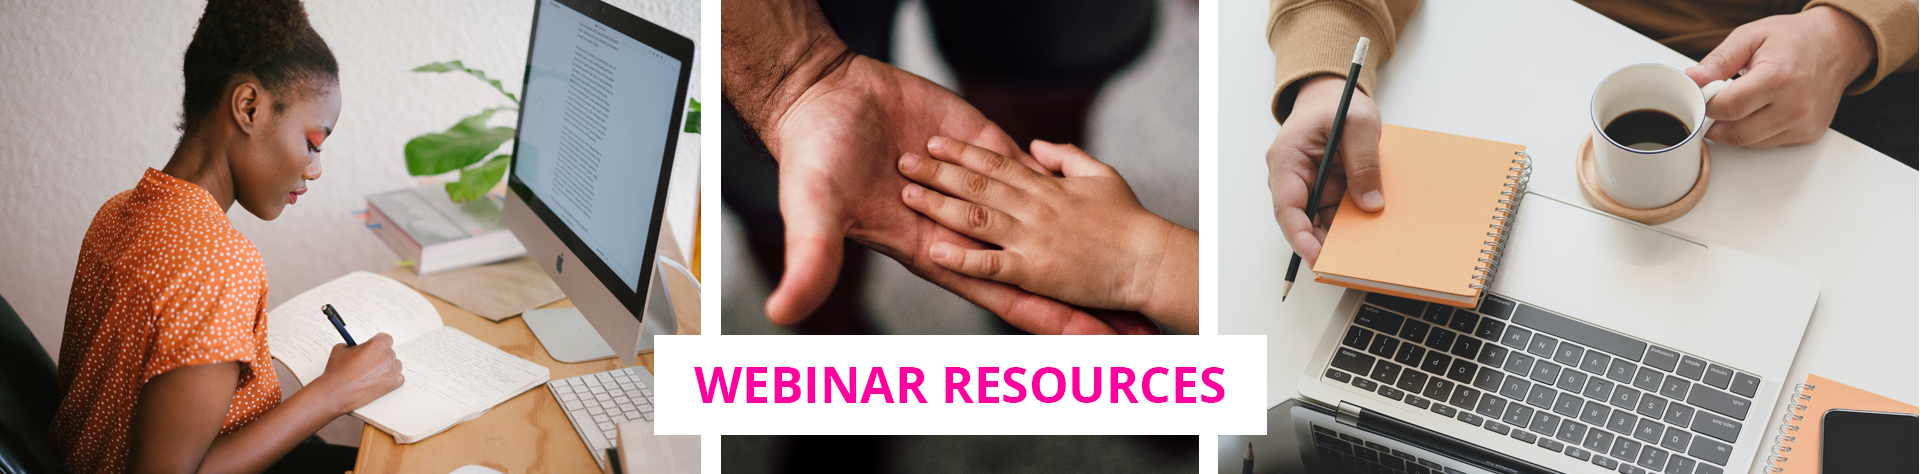 Webinar Resources